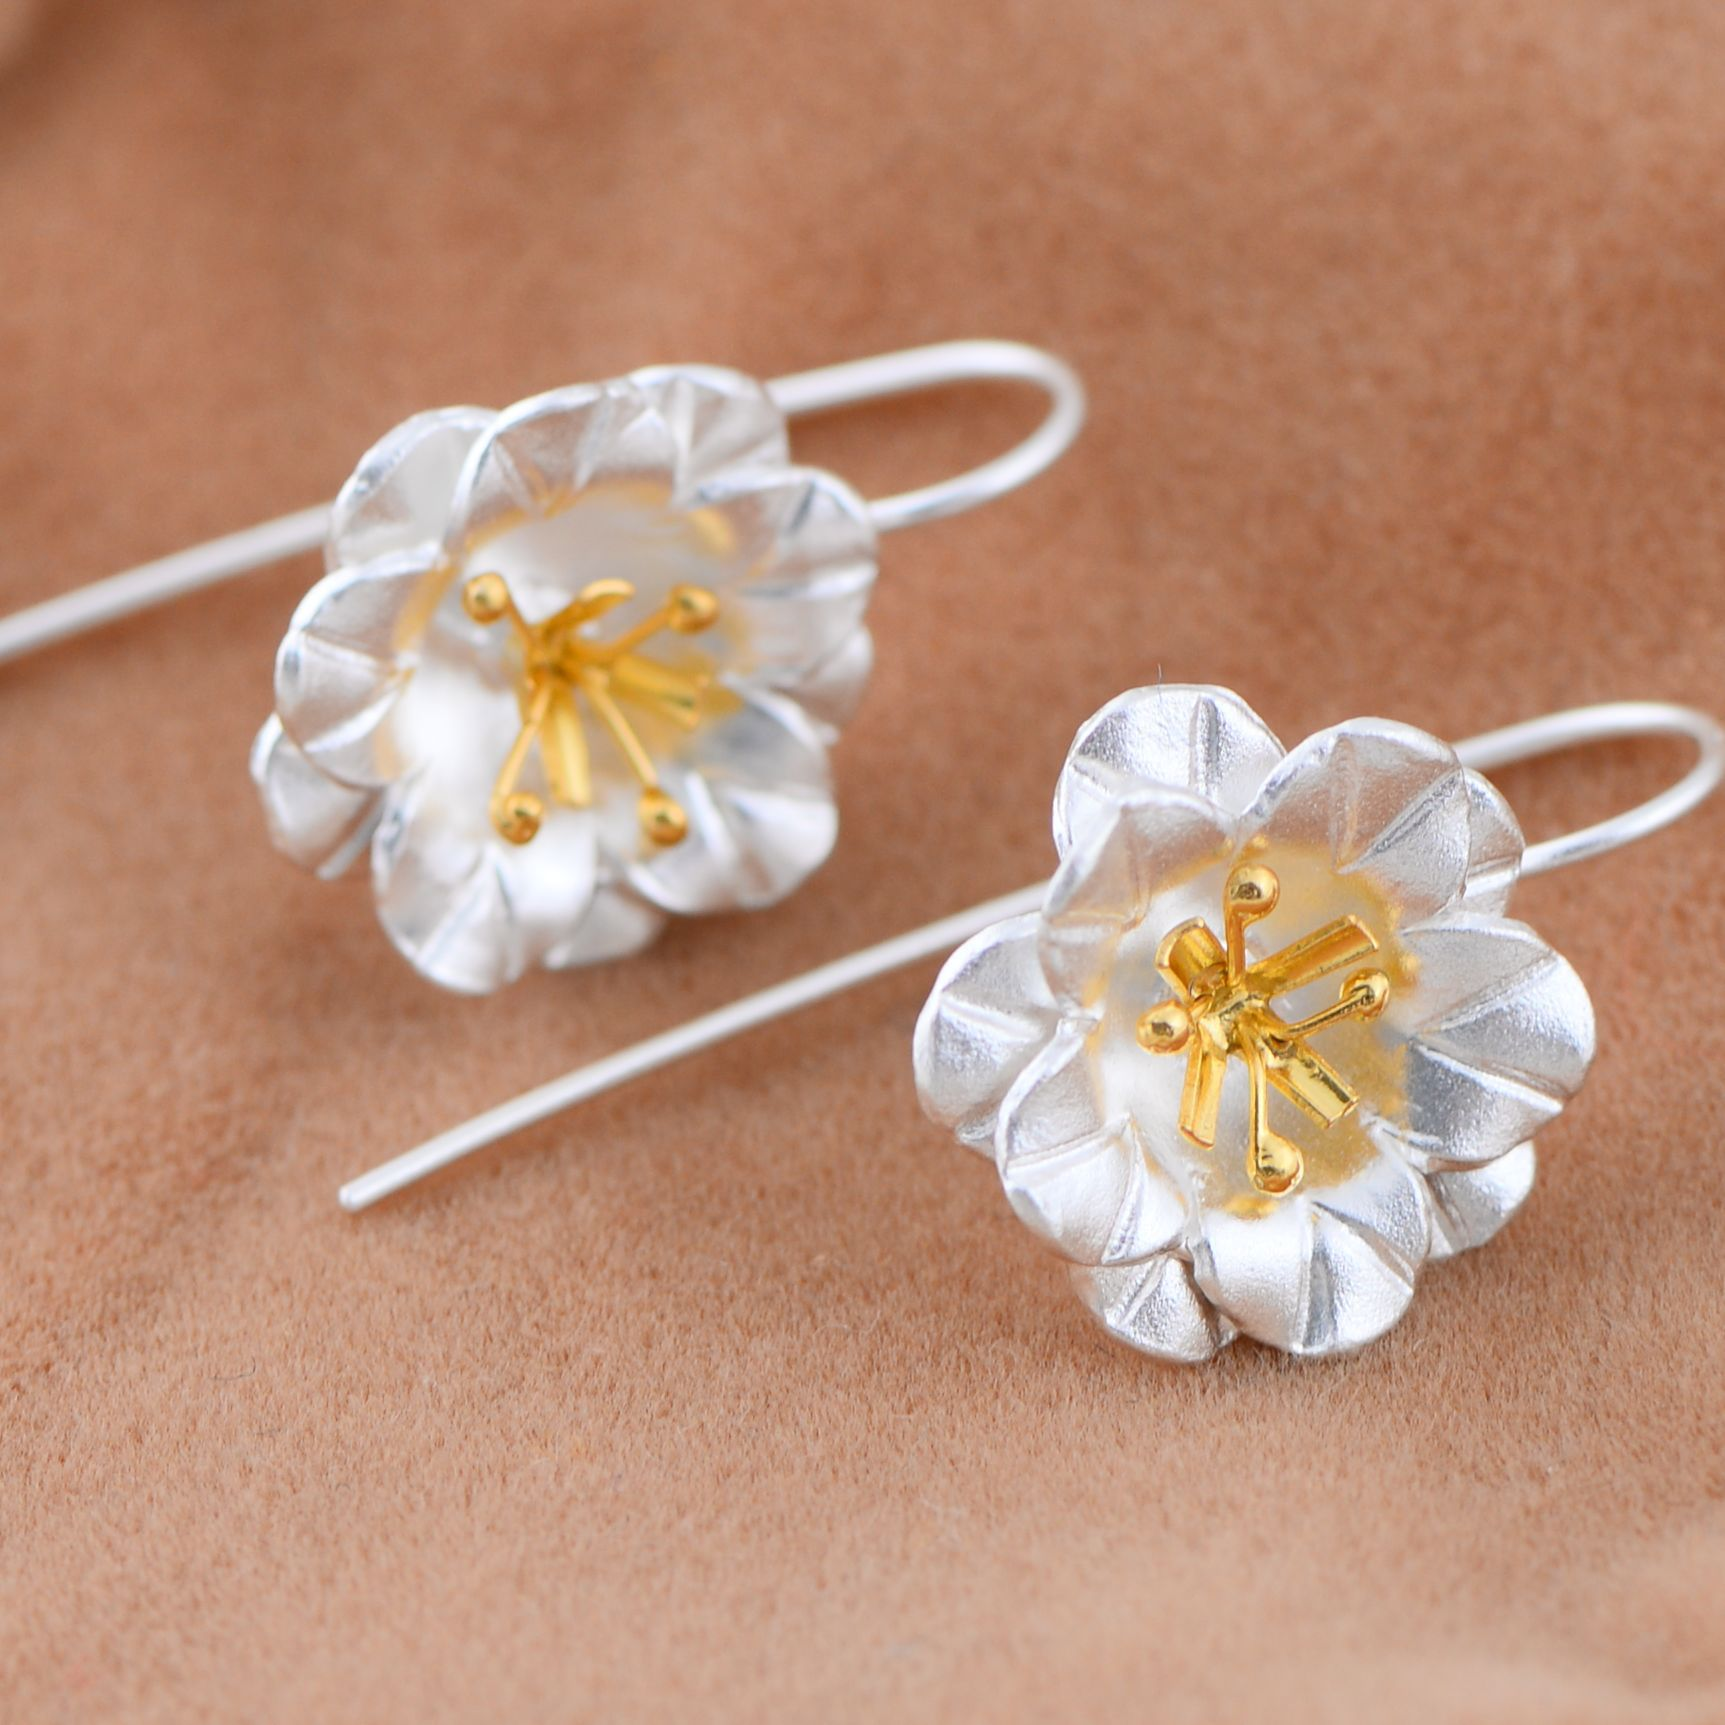 silver jewelry wholesale 925 sterling silver jewelry Thailand Golden Flower Earrings small drawing process 46726 Ms.(China (Mainland))